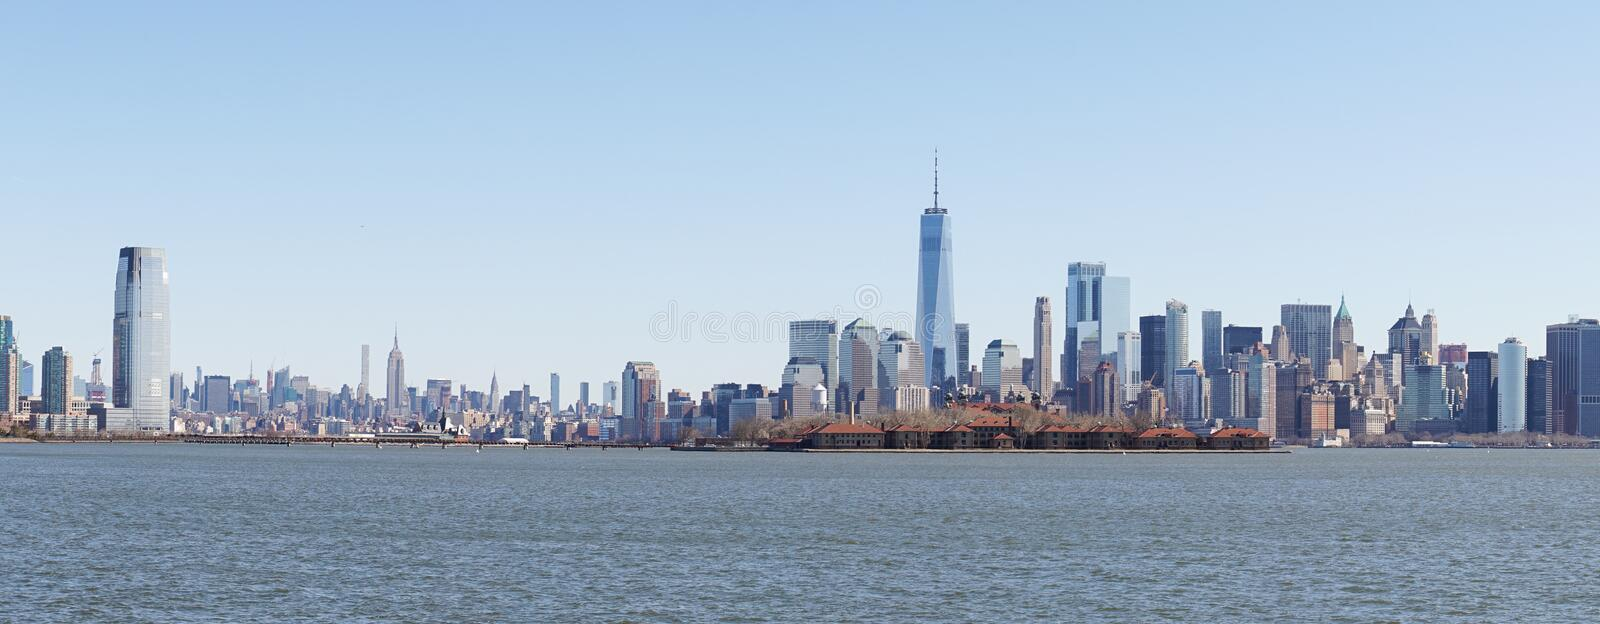 Views from Liberty State Park in Jersey City towards the Skyline of Manhattan in New York City. royalty free stock images